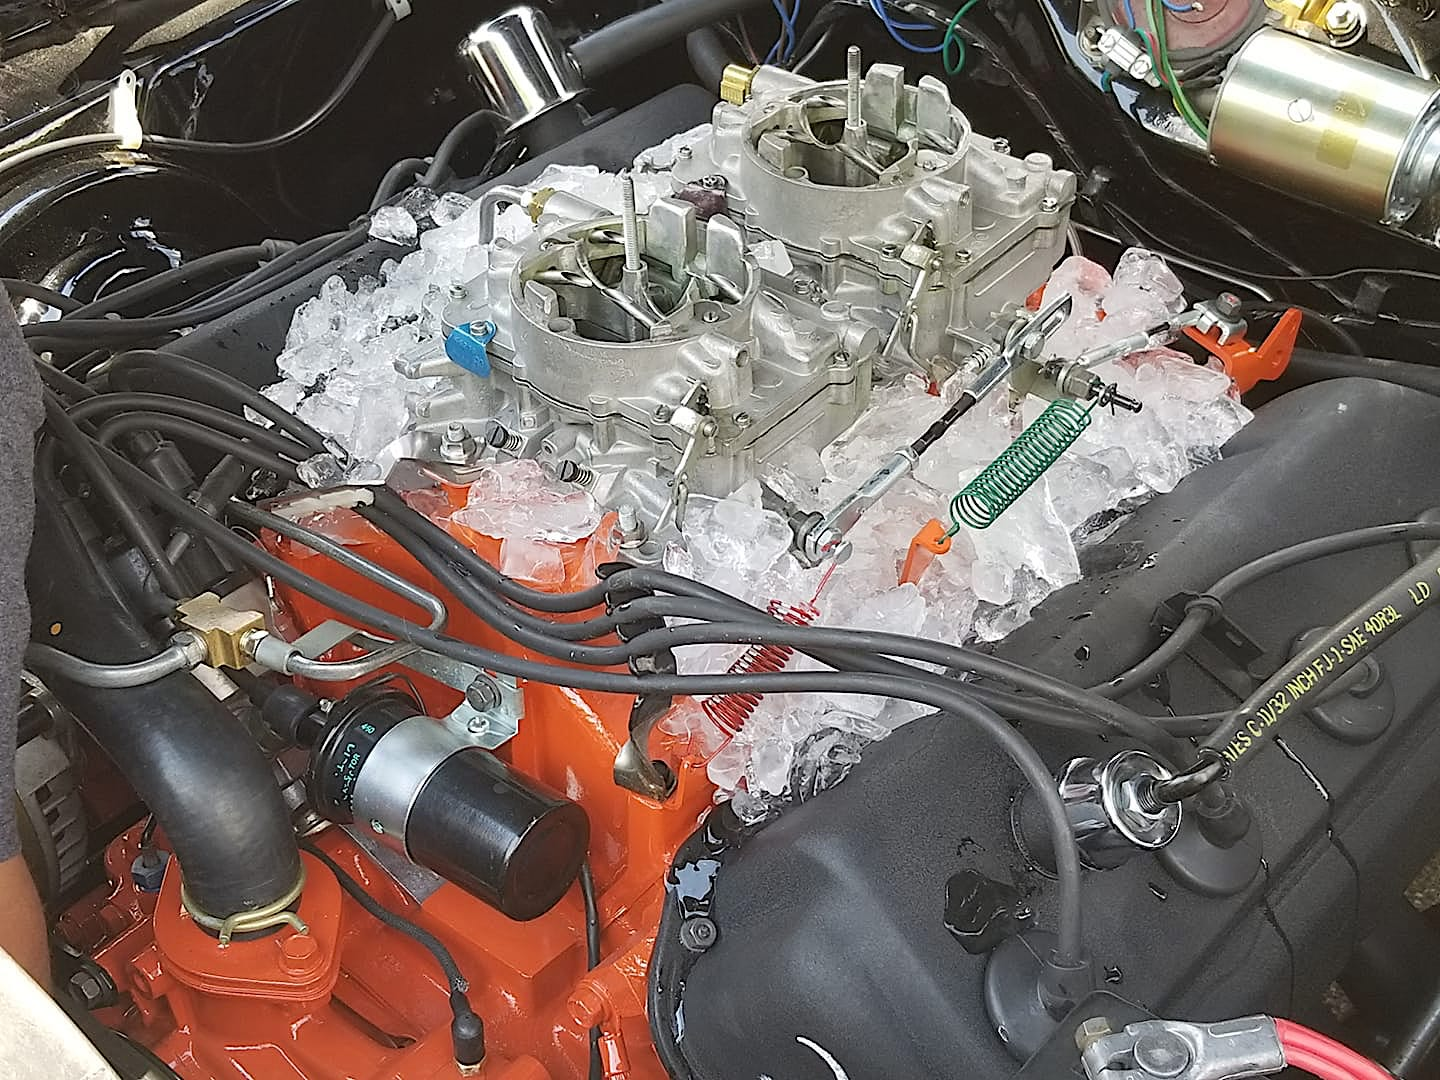 vehicle engine being cooled down with ice